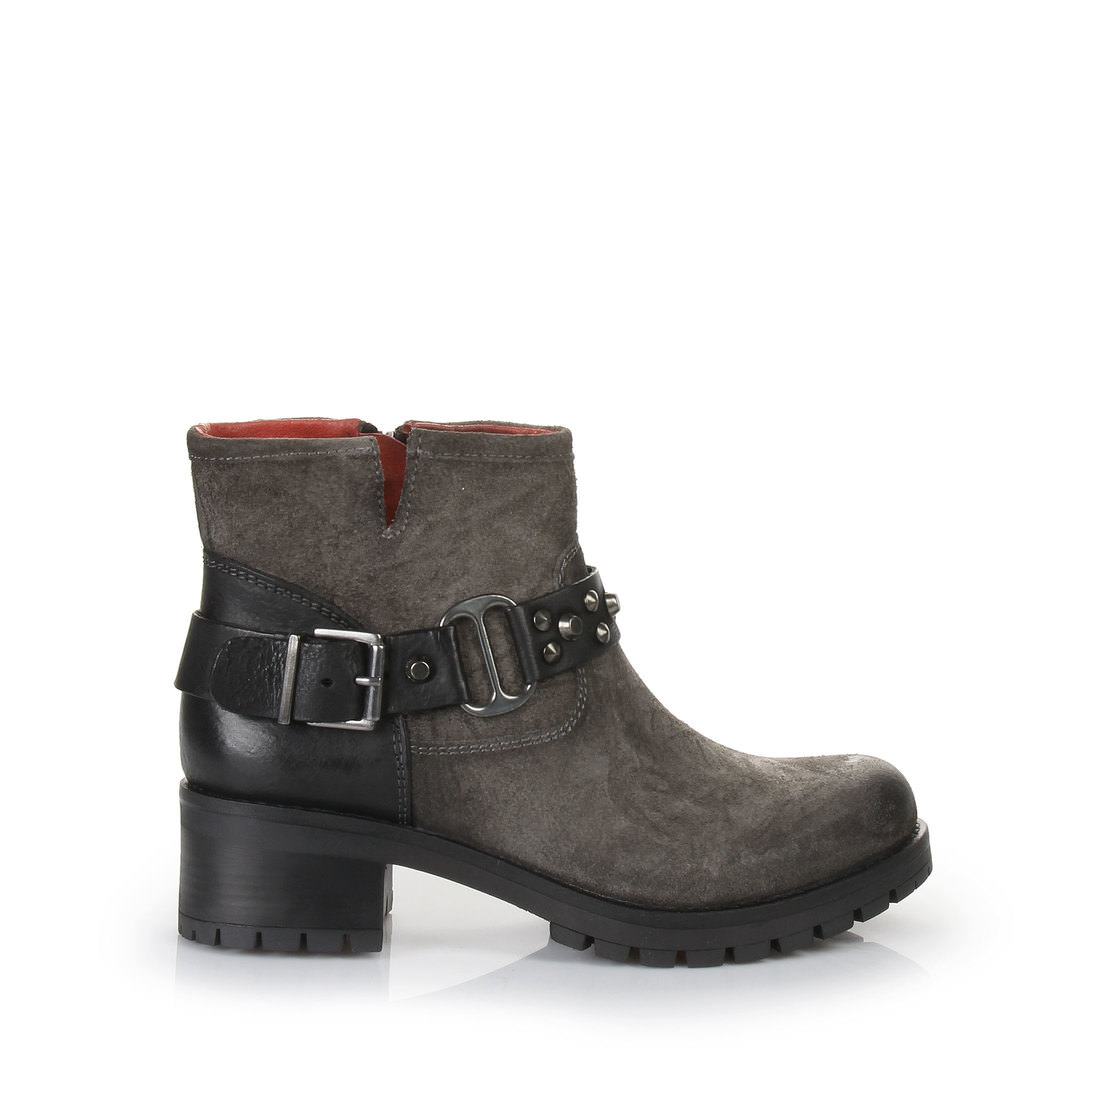 buffalo biker summer boots in grey buy online in buffalo online shop buffalo online shop. Black Bedroom Furniture Sets. Home Design Ideas